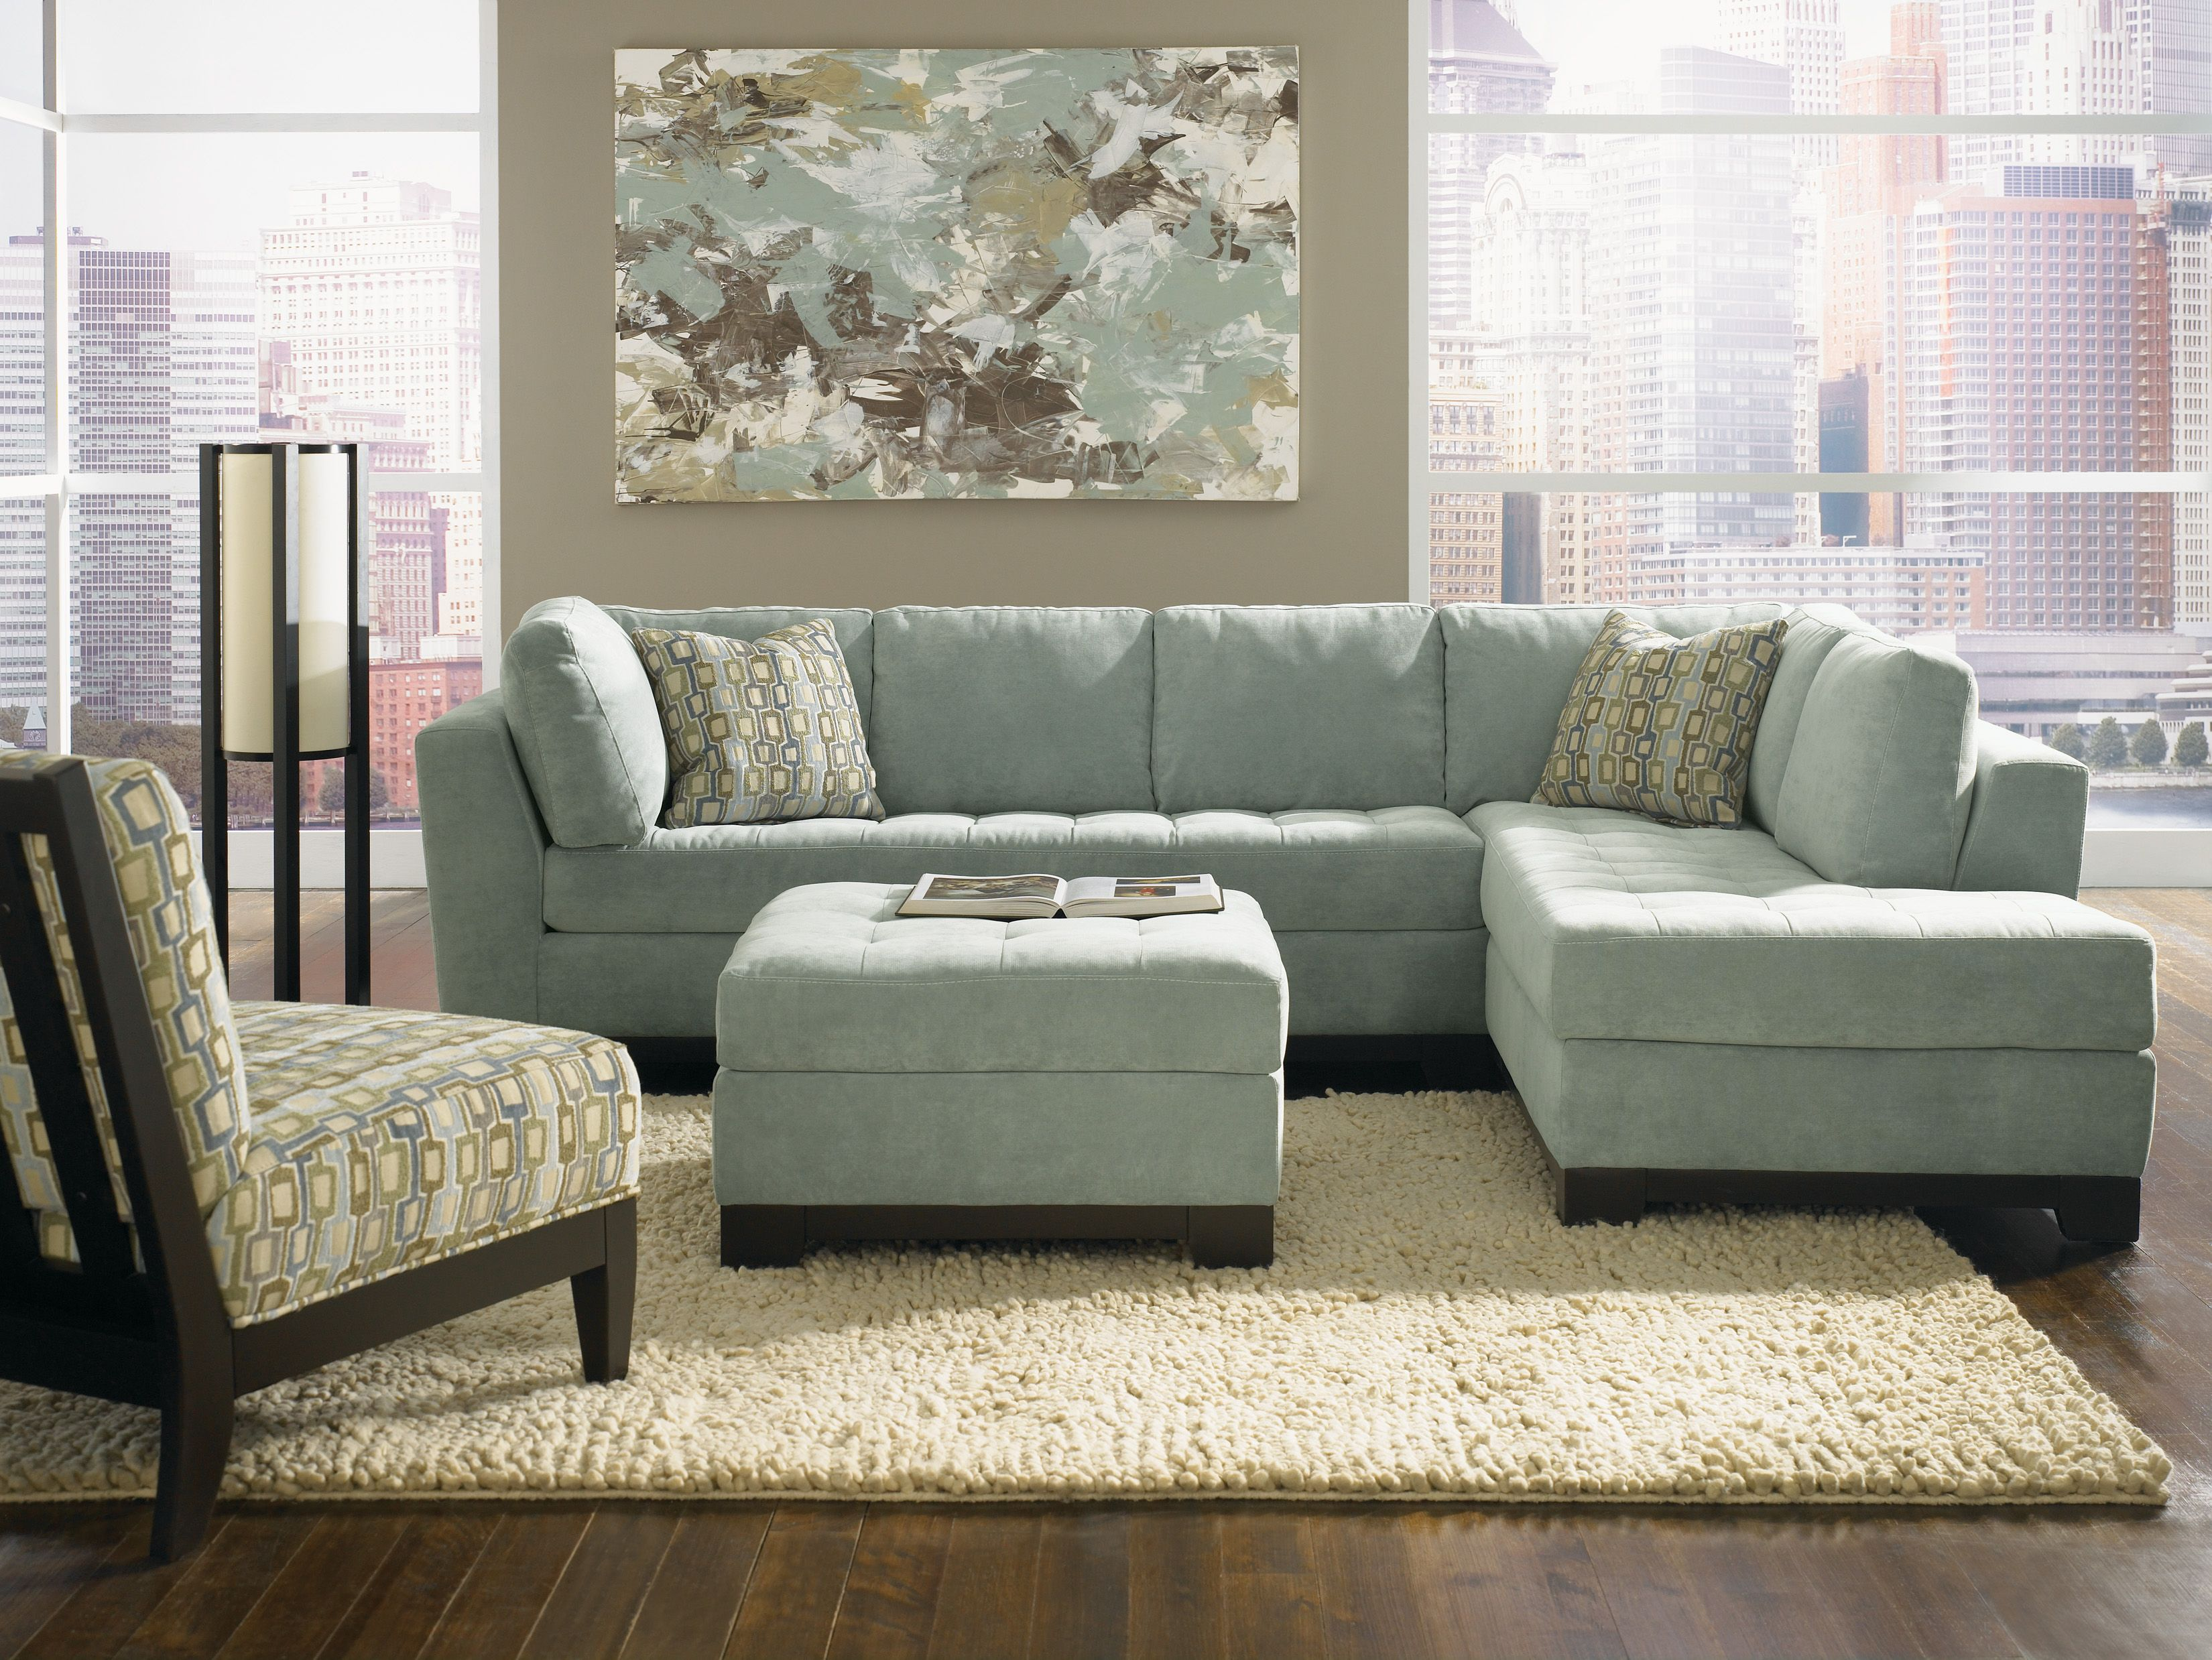 U0027Gabrielleu0027 Sectional. Available With RAF Or LAF Chaise. Ottoman U0026 Accent  Chairs